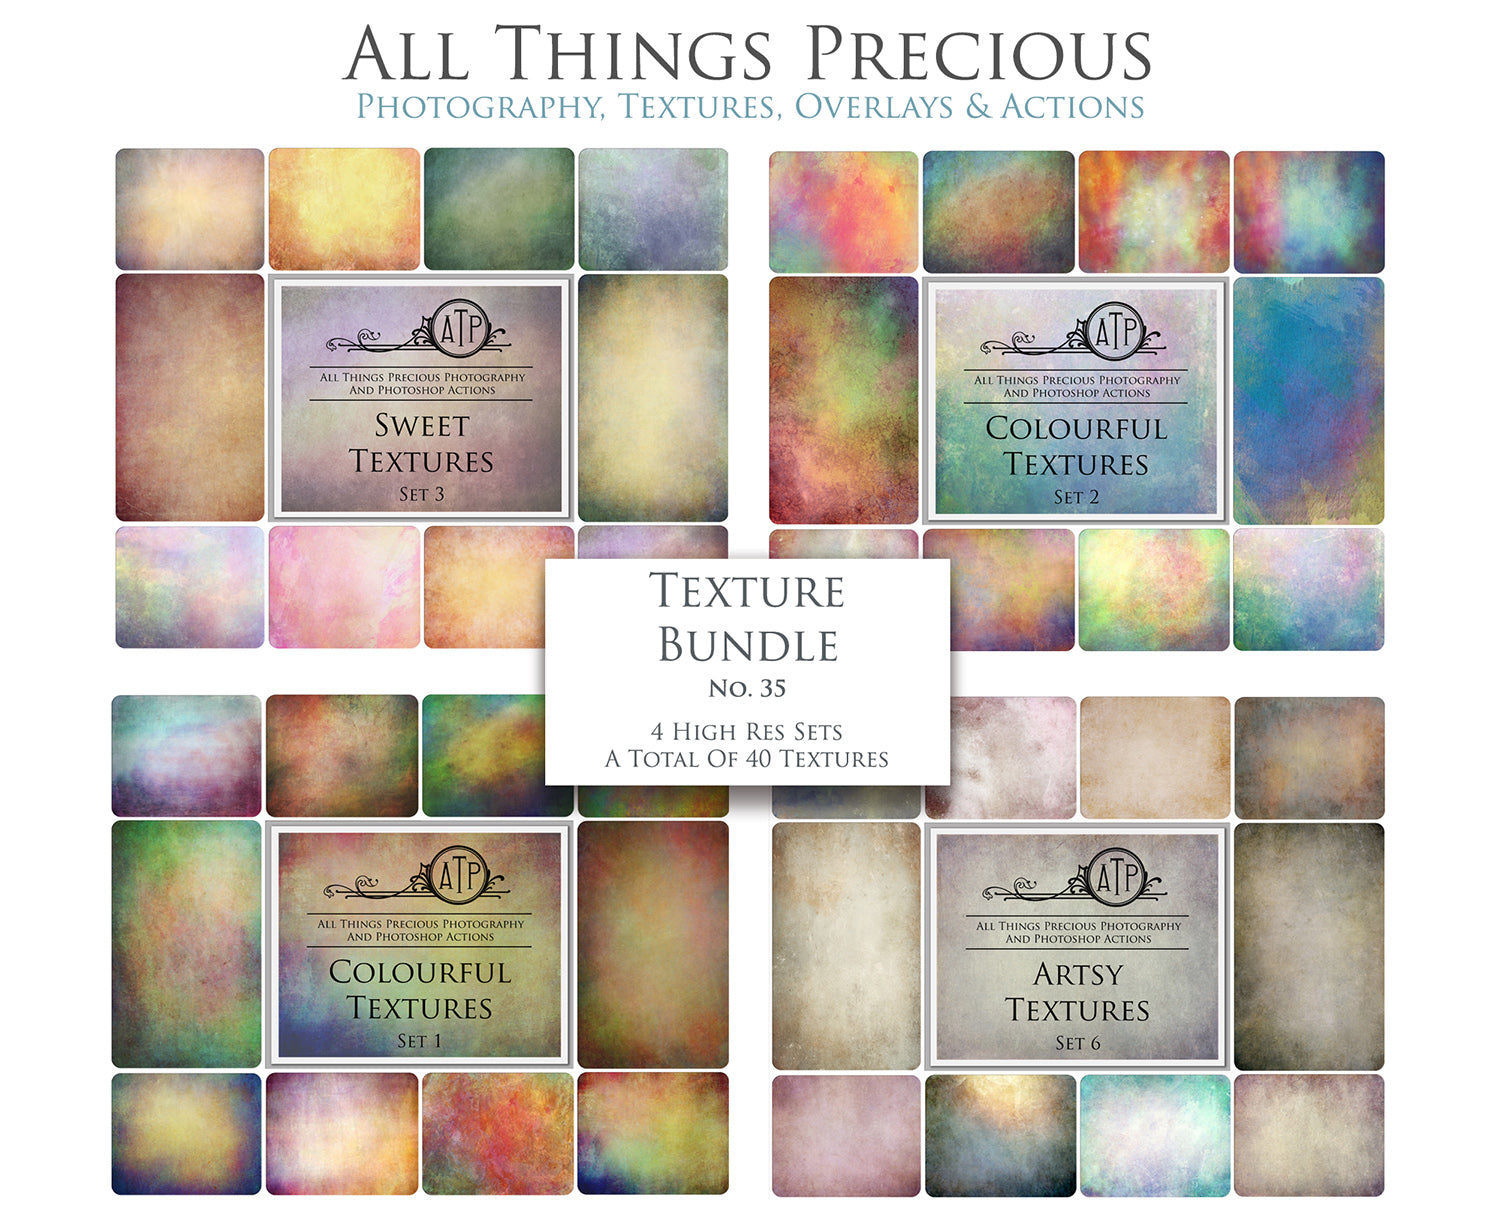 TEXTURE BUNDLE / No. 35